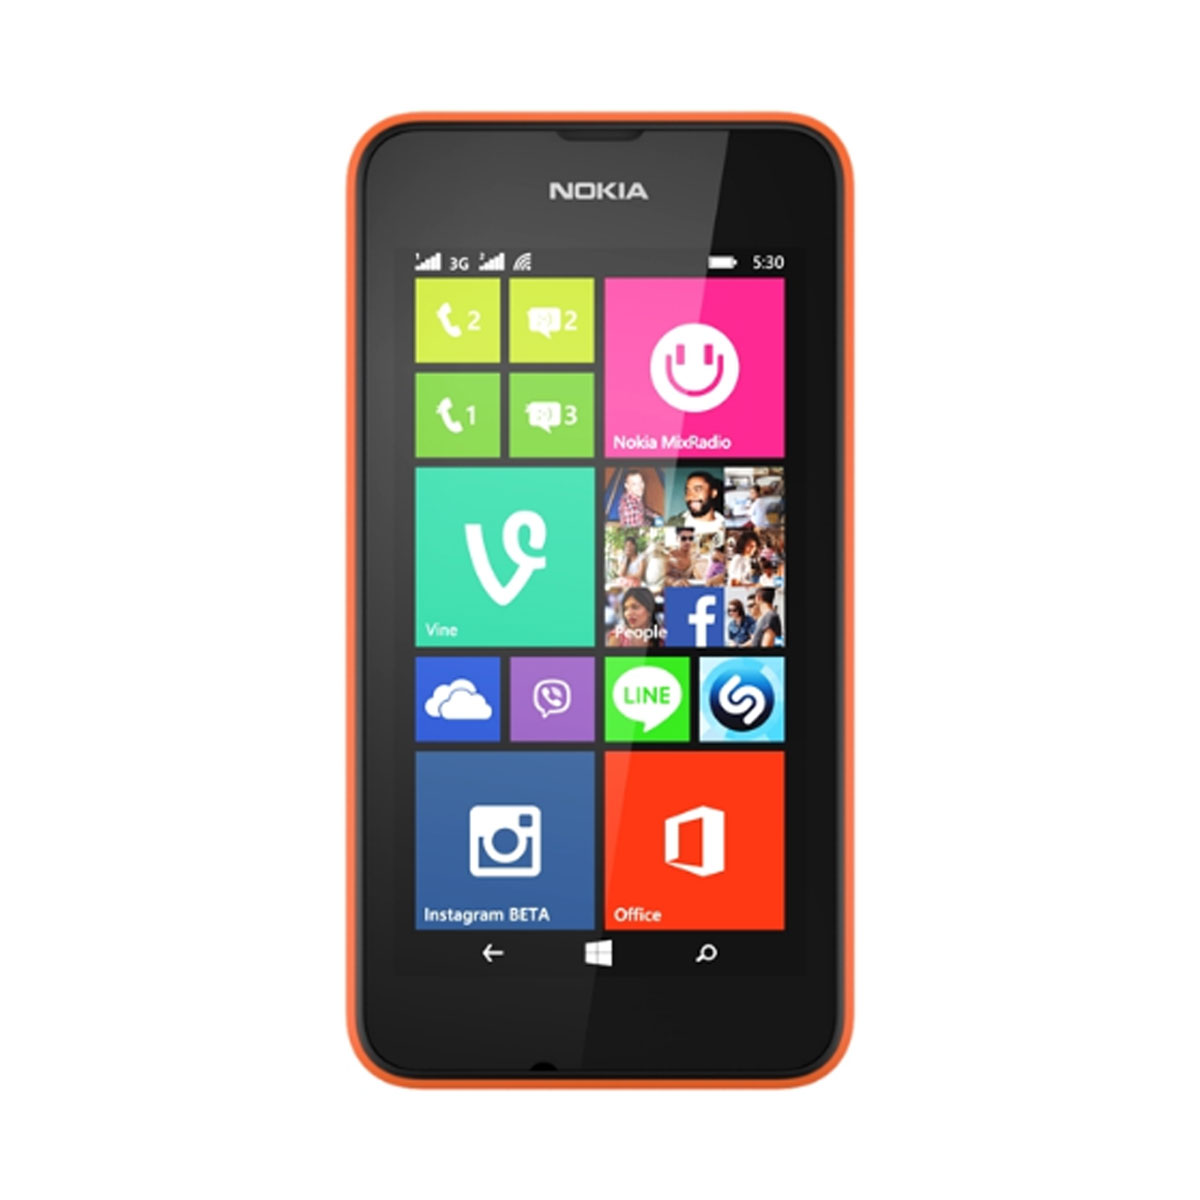 nokia lumia 530 dual sim orange mobile smartphone nokia sur. Black Bedroom Furniture Sets. Home Design Ideas